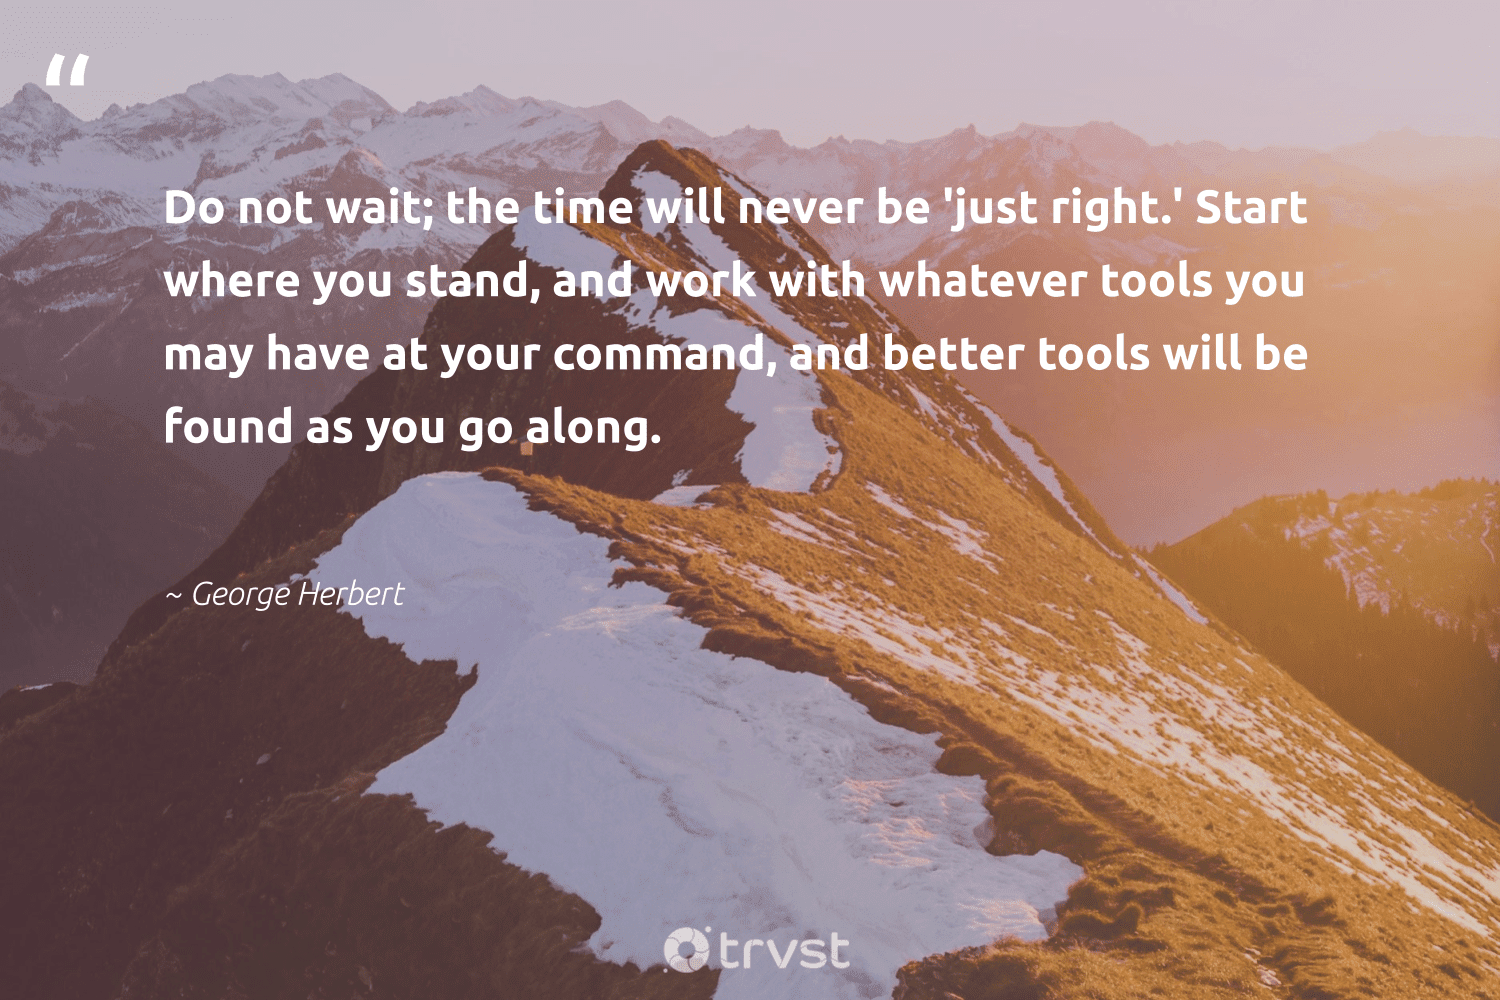 """""""Do not wait; the time will never be 'just right.' Start where you stand, and work with whatever tools you may have at your command, and better tools will be found as you go along.""""  - George Herbert #trvst #quotes #futureofwork #gogreen #softskills #collectiveaction #begreat #ecoconscious #nevergiveup #impact #planetearthfirst #dotherightthing"""